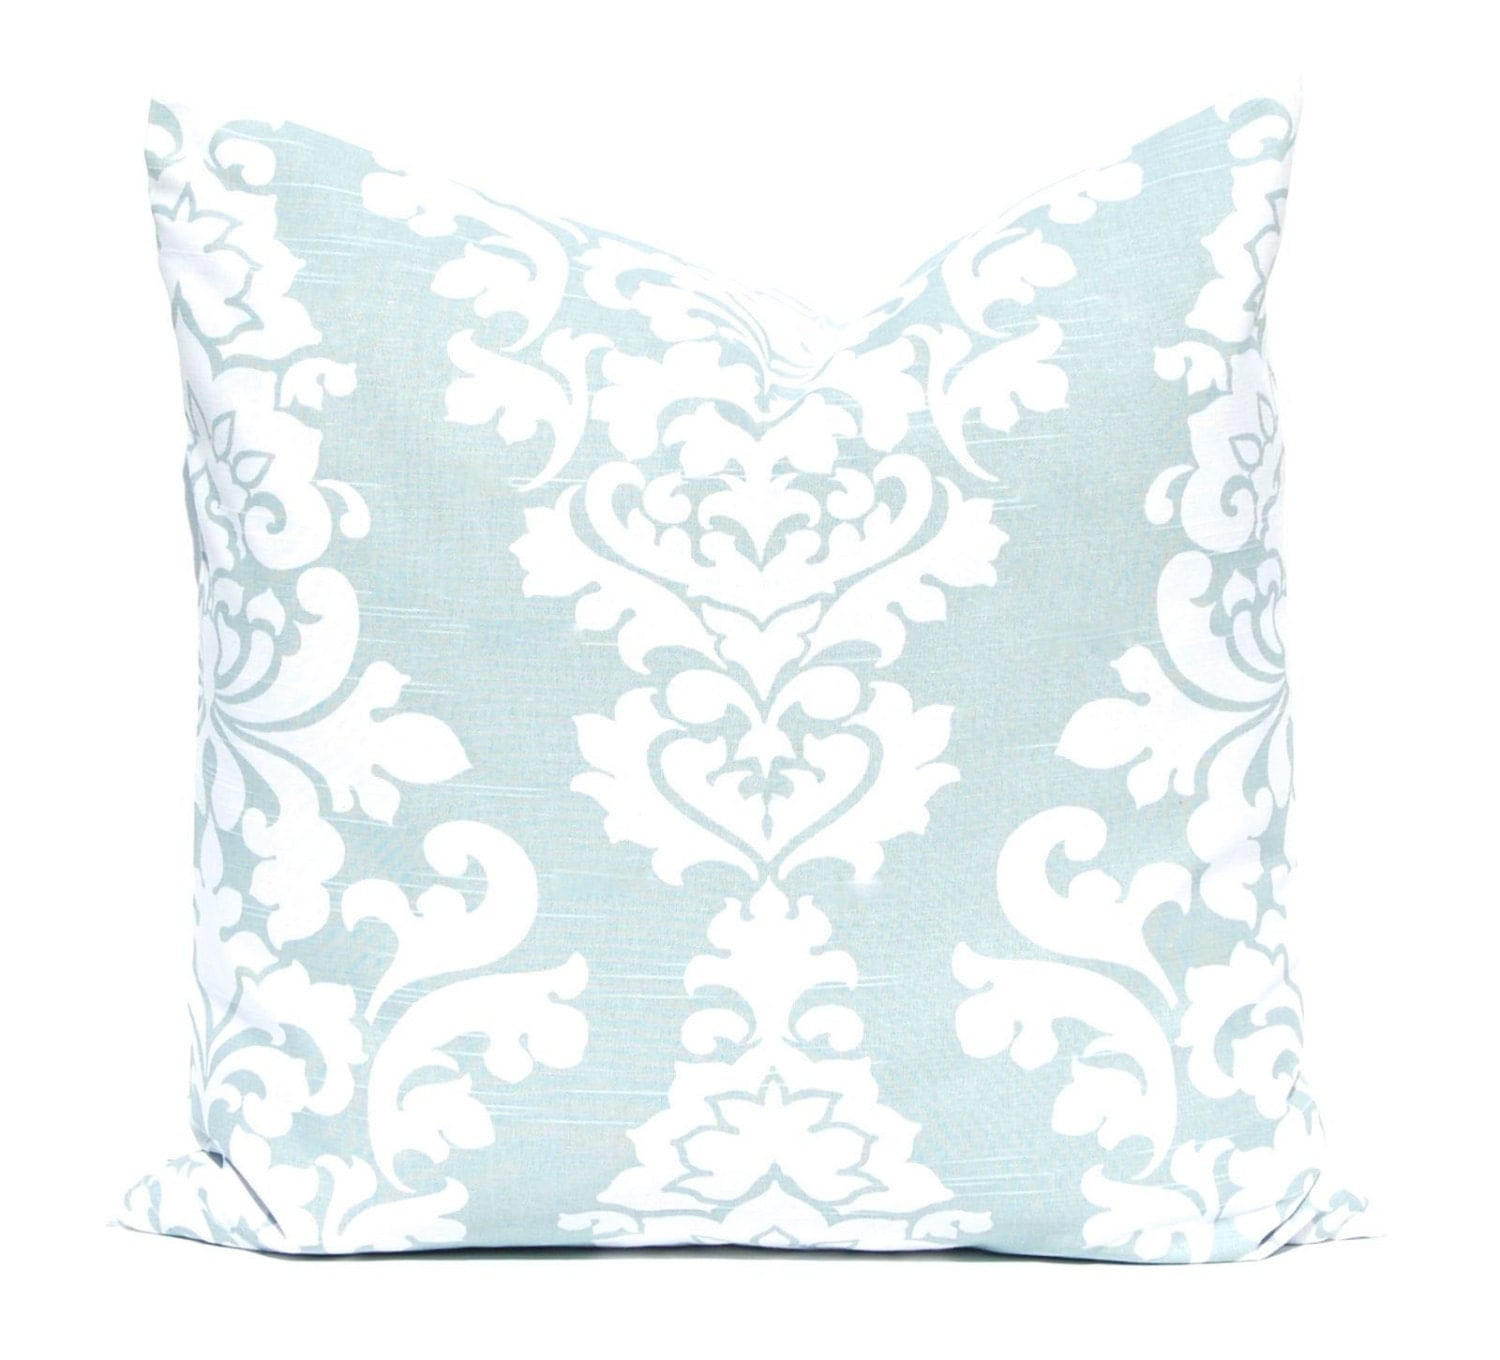 Aqua Pillows Decorative Throw Pillow Covers One Aqua Sea Foam